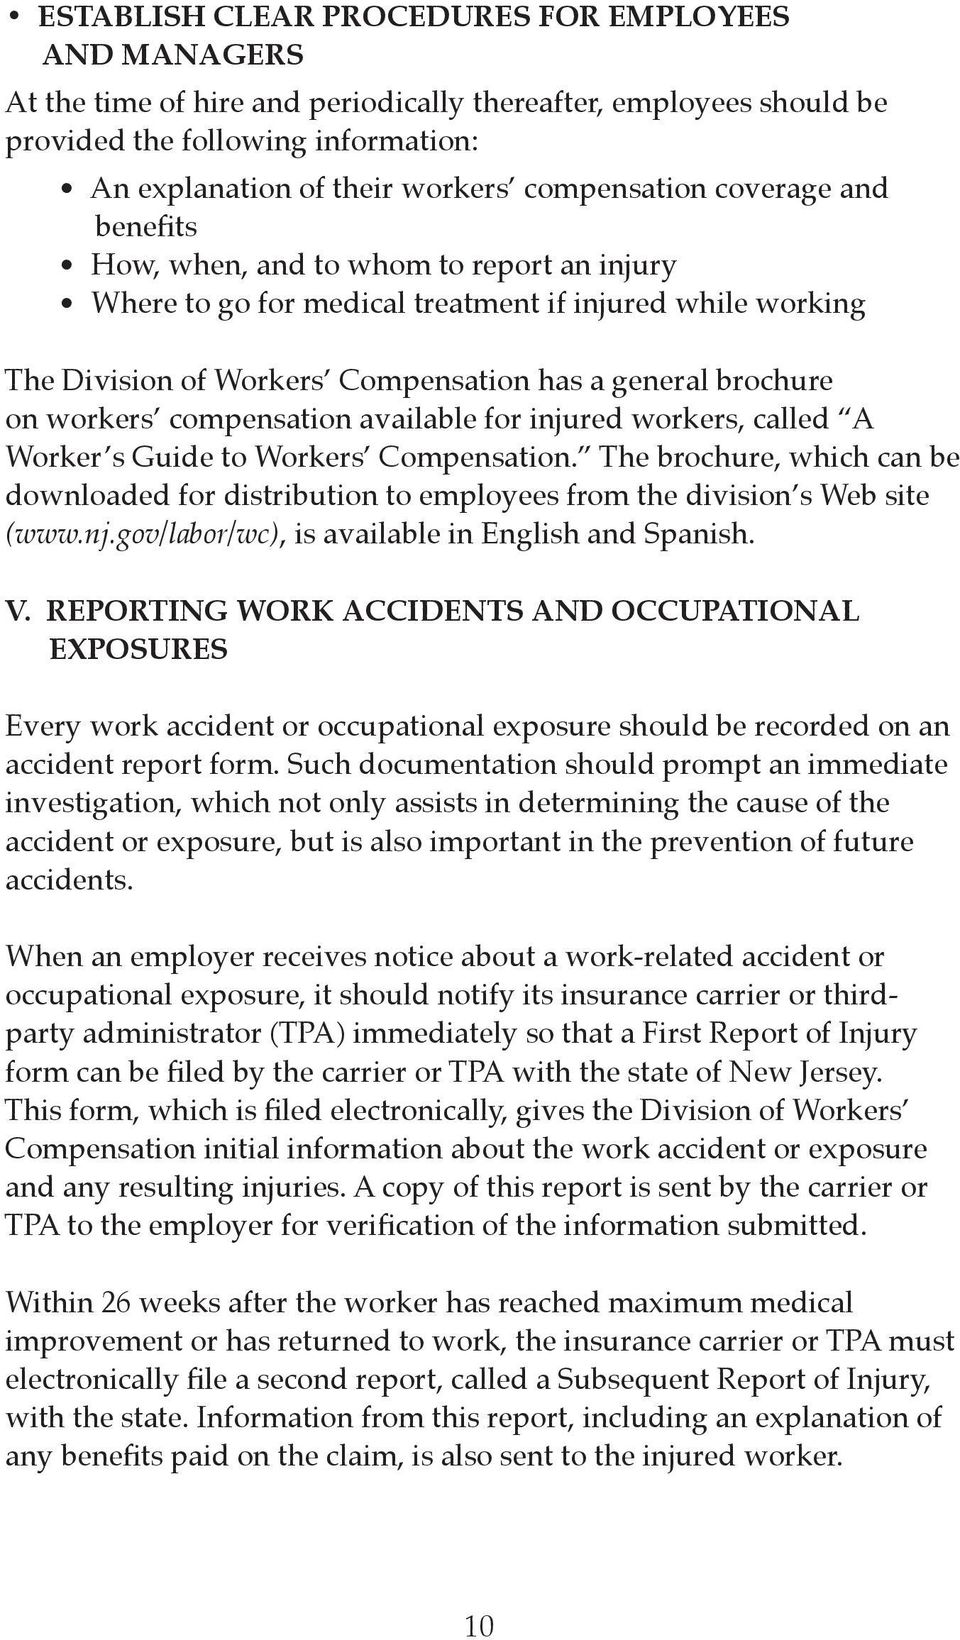 workers compensation available for injured workers, called A Worker s Guide to Workers Compensation.